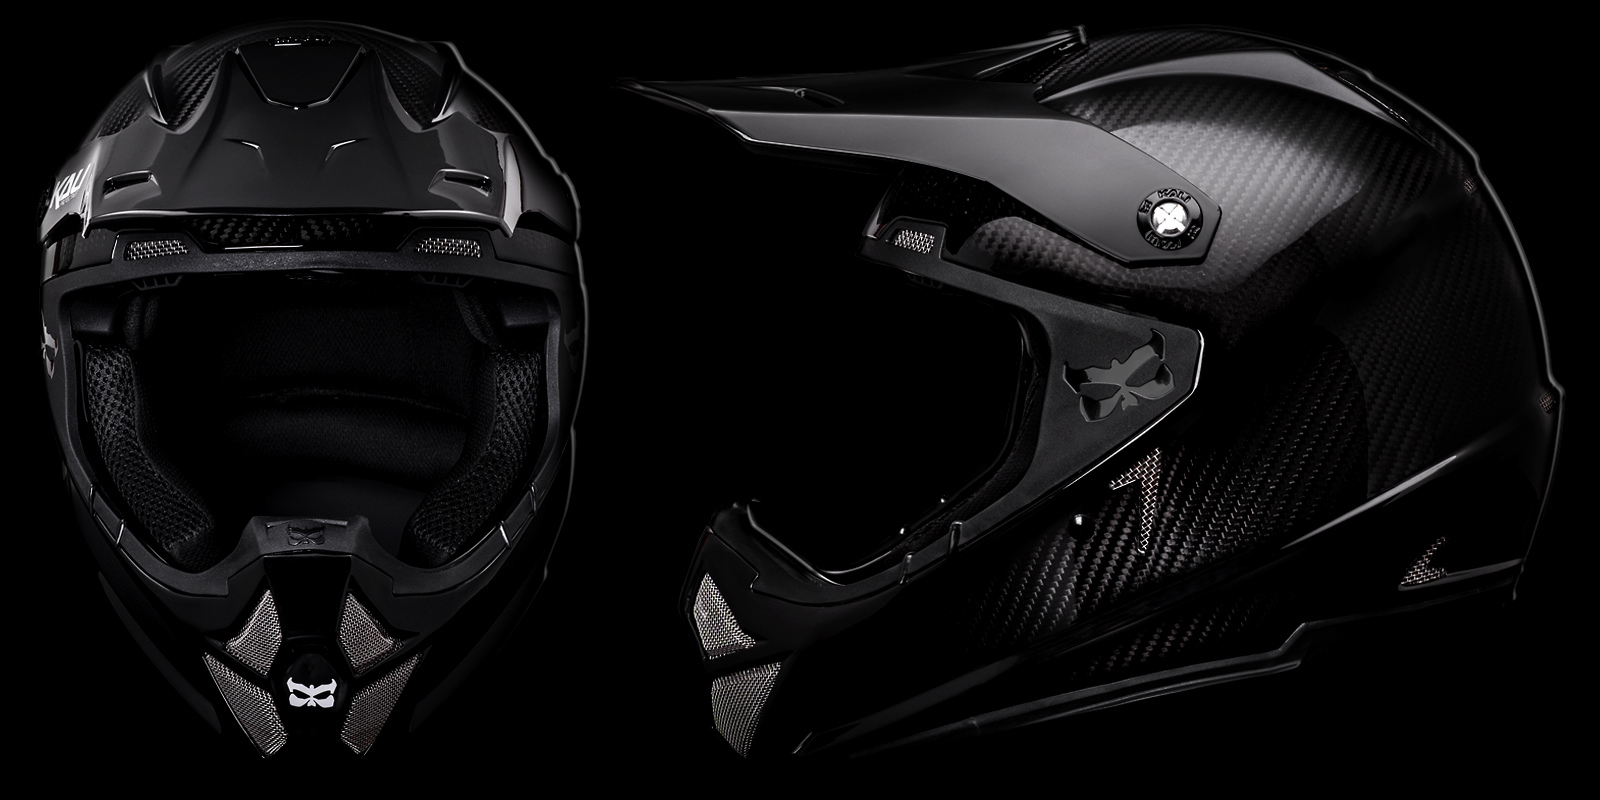 Kali Releases All New Full Face Helmet – Shiva 2.0